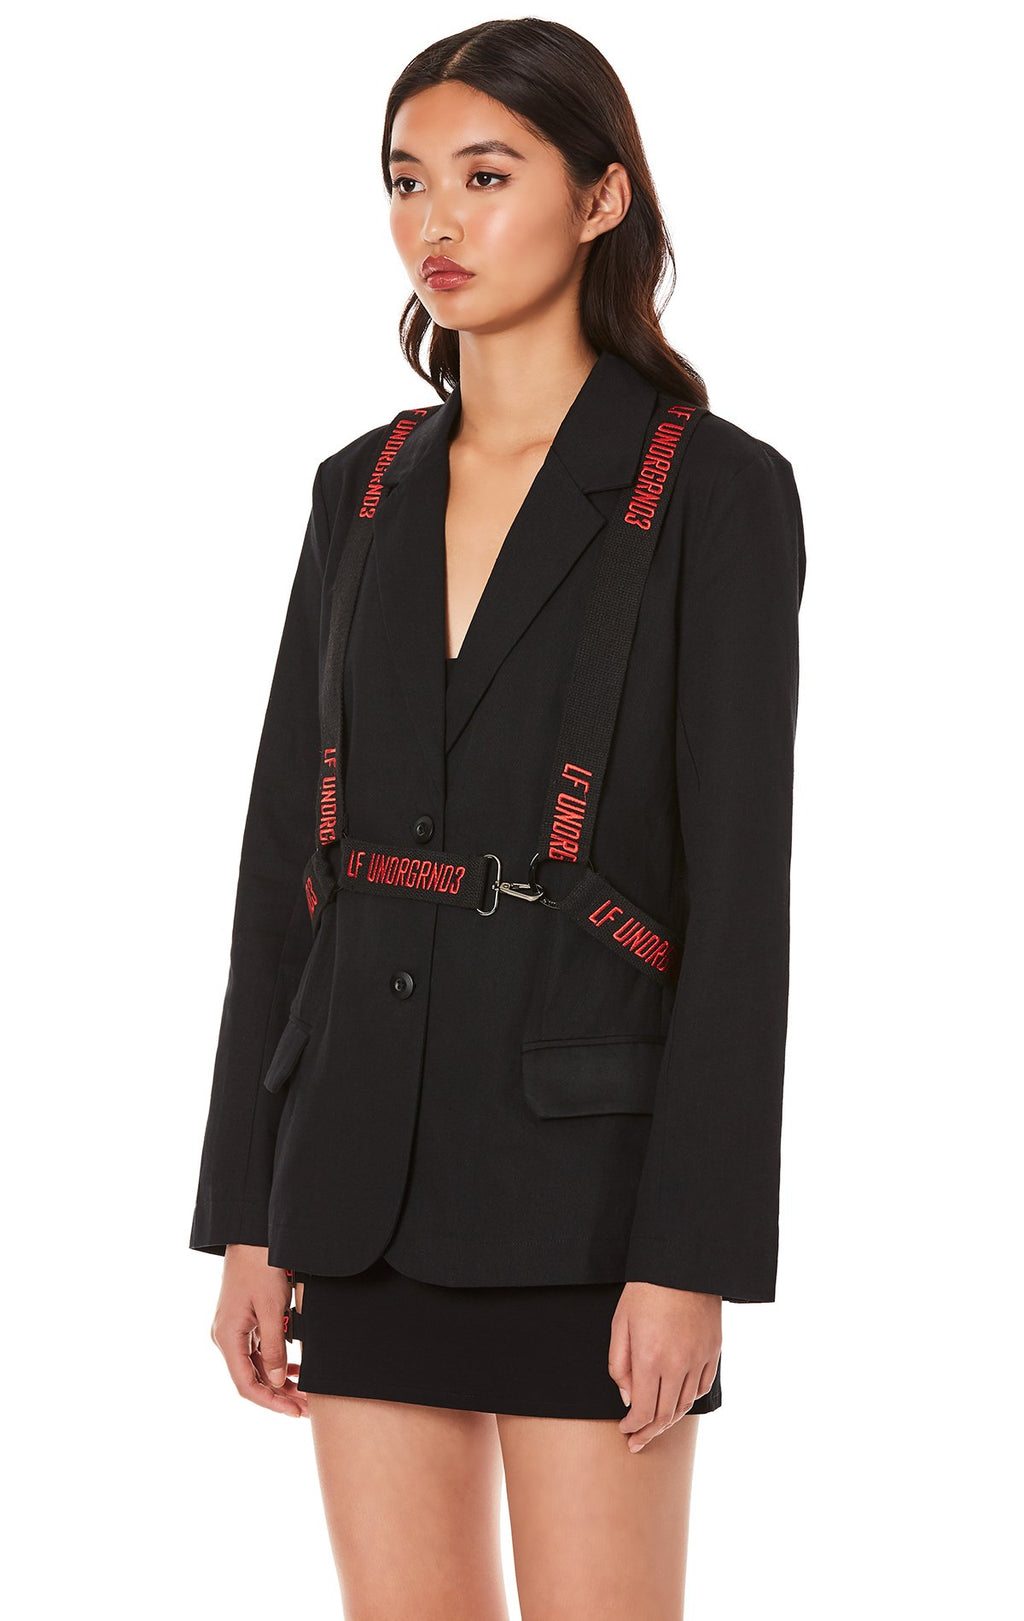 LF THE BRAND JACKET WITH EMBROIDERED SUSPENDER HARNESS ANGLE